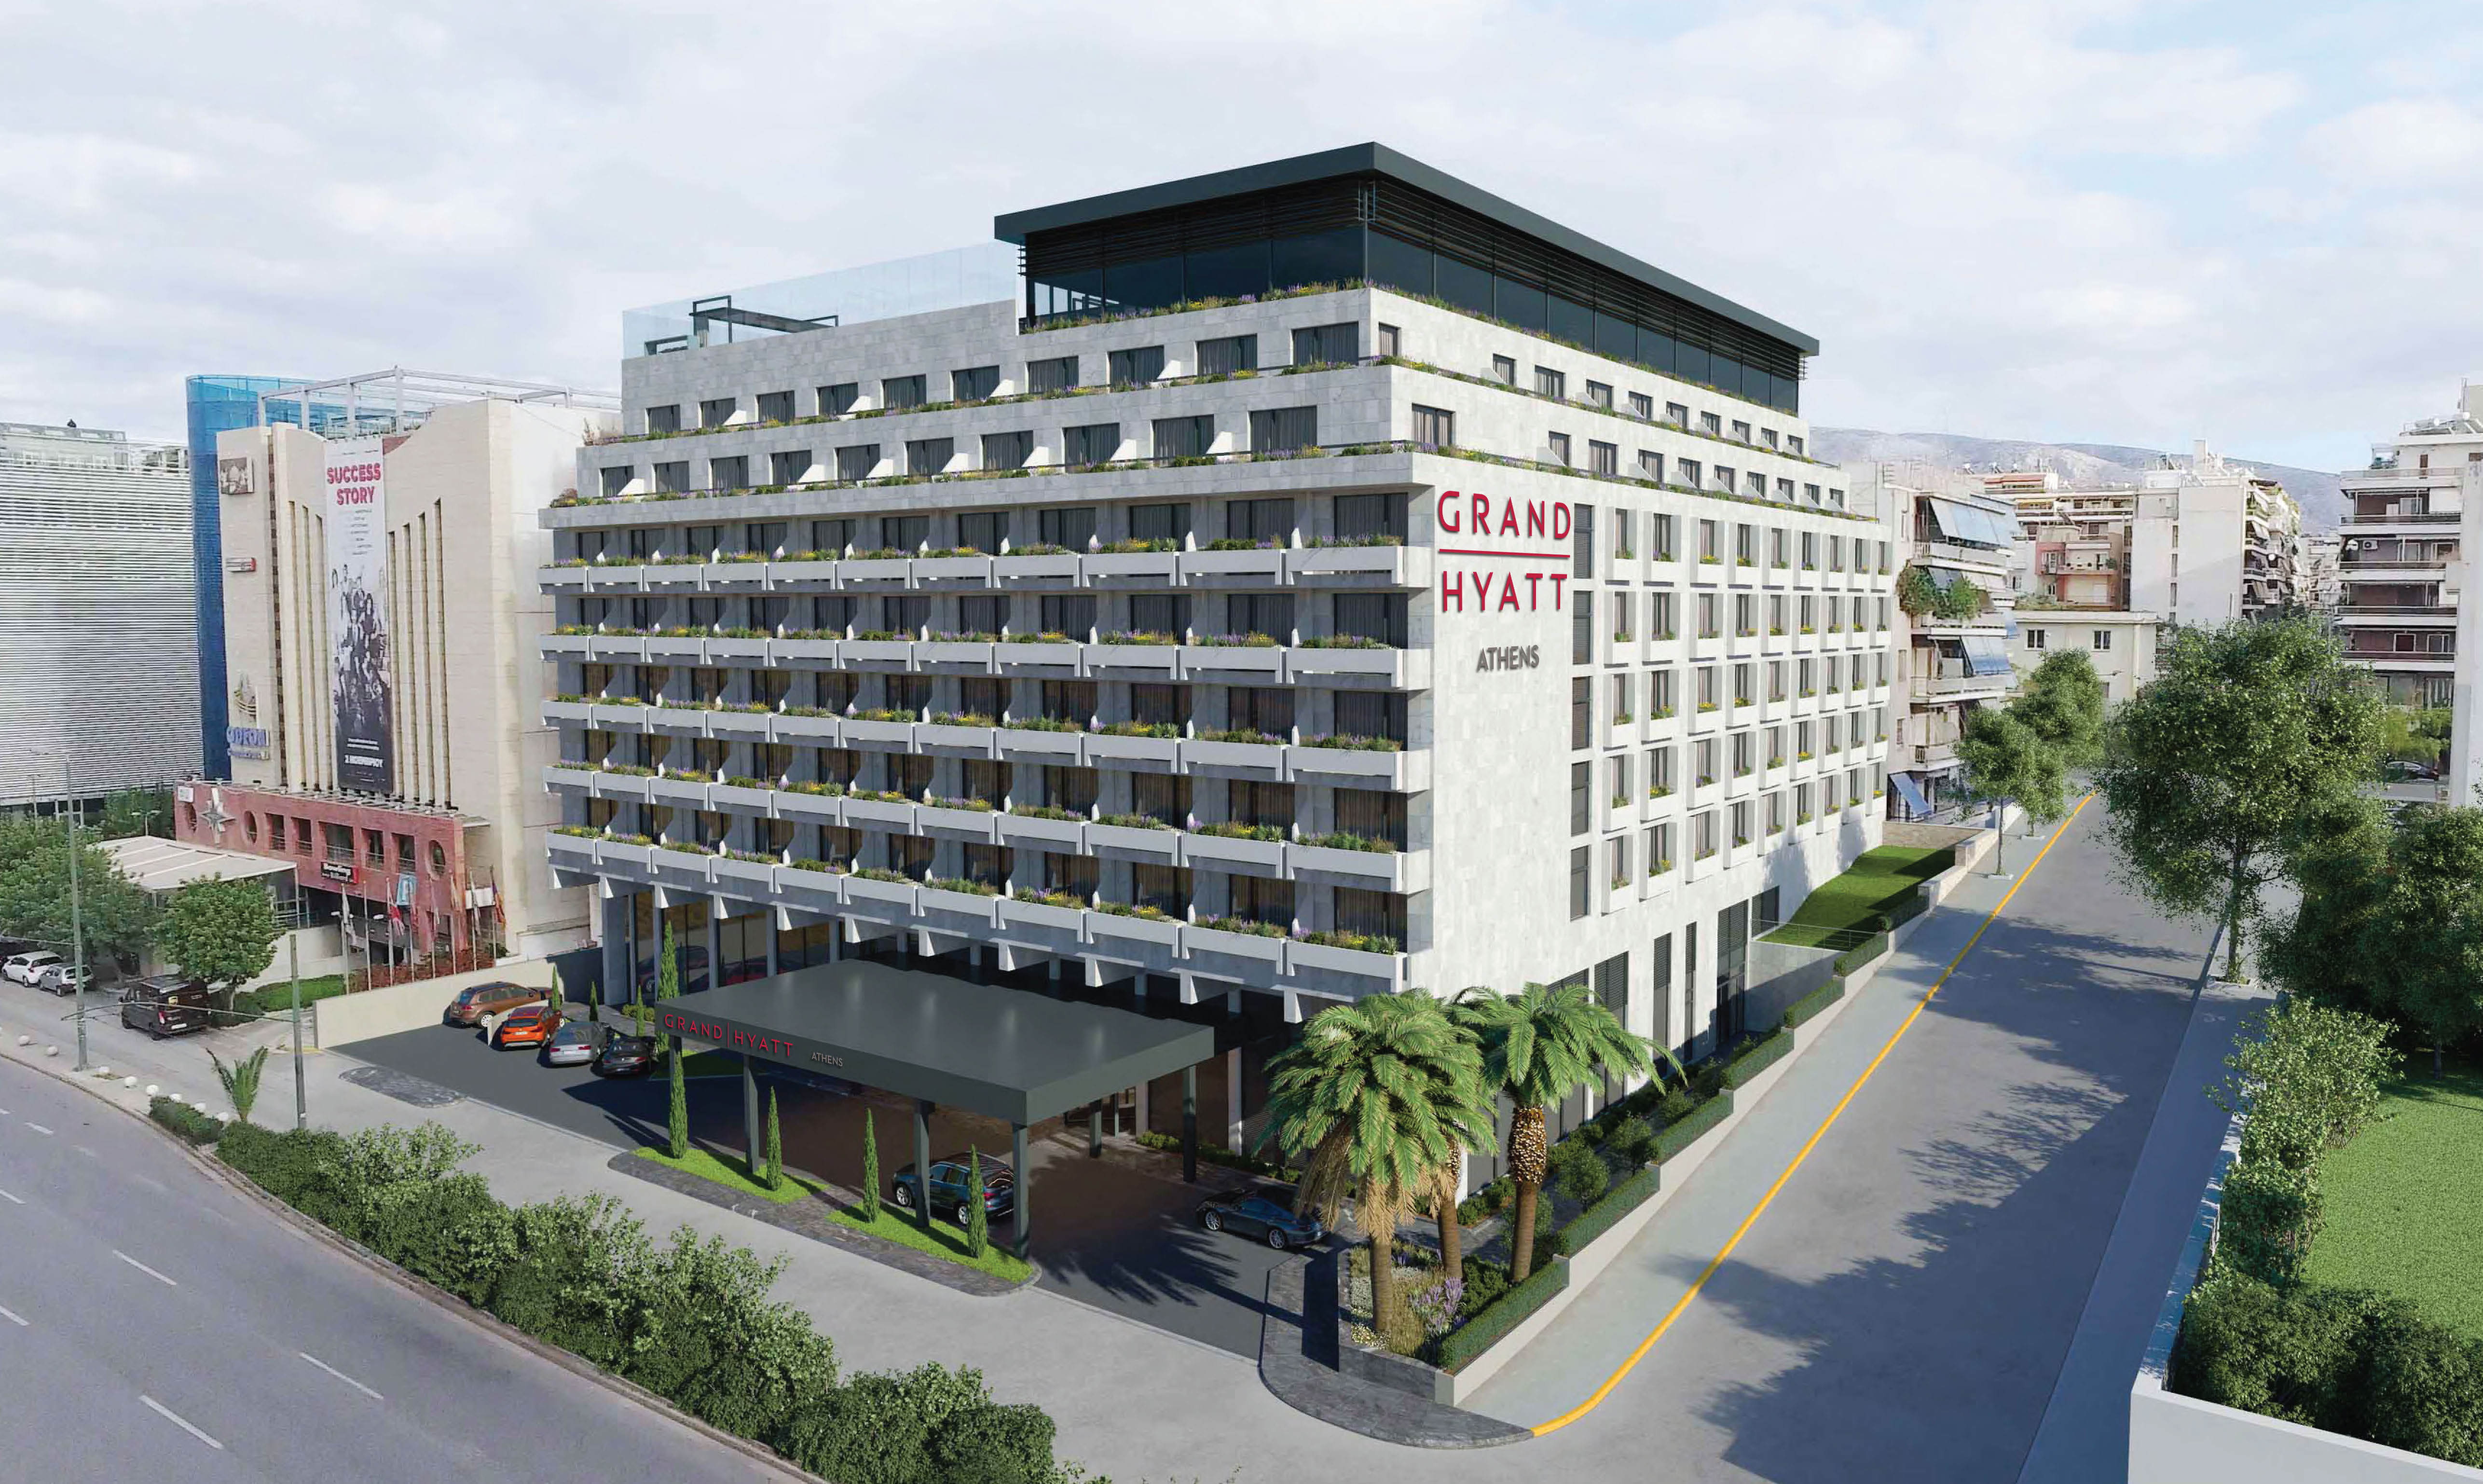 Hyatt Announces Plans For A Grand Hotel In Athens Business Wire Residential Wiring Europe